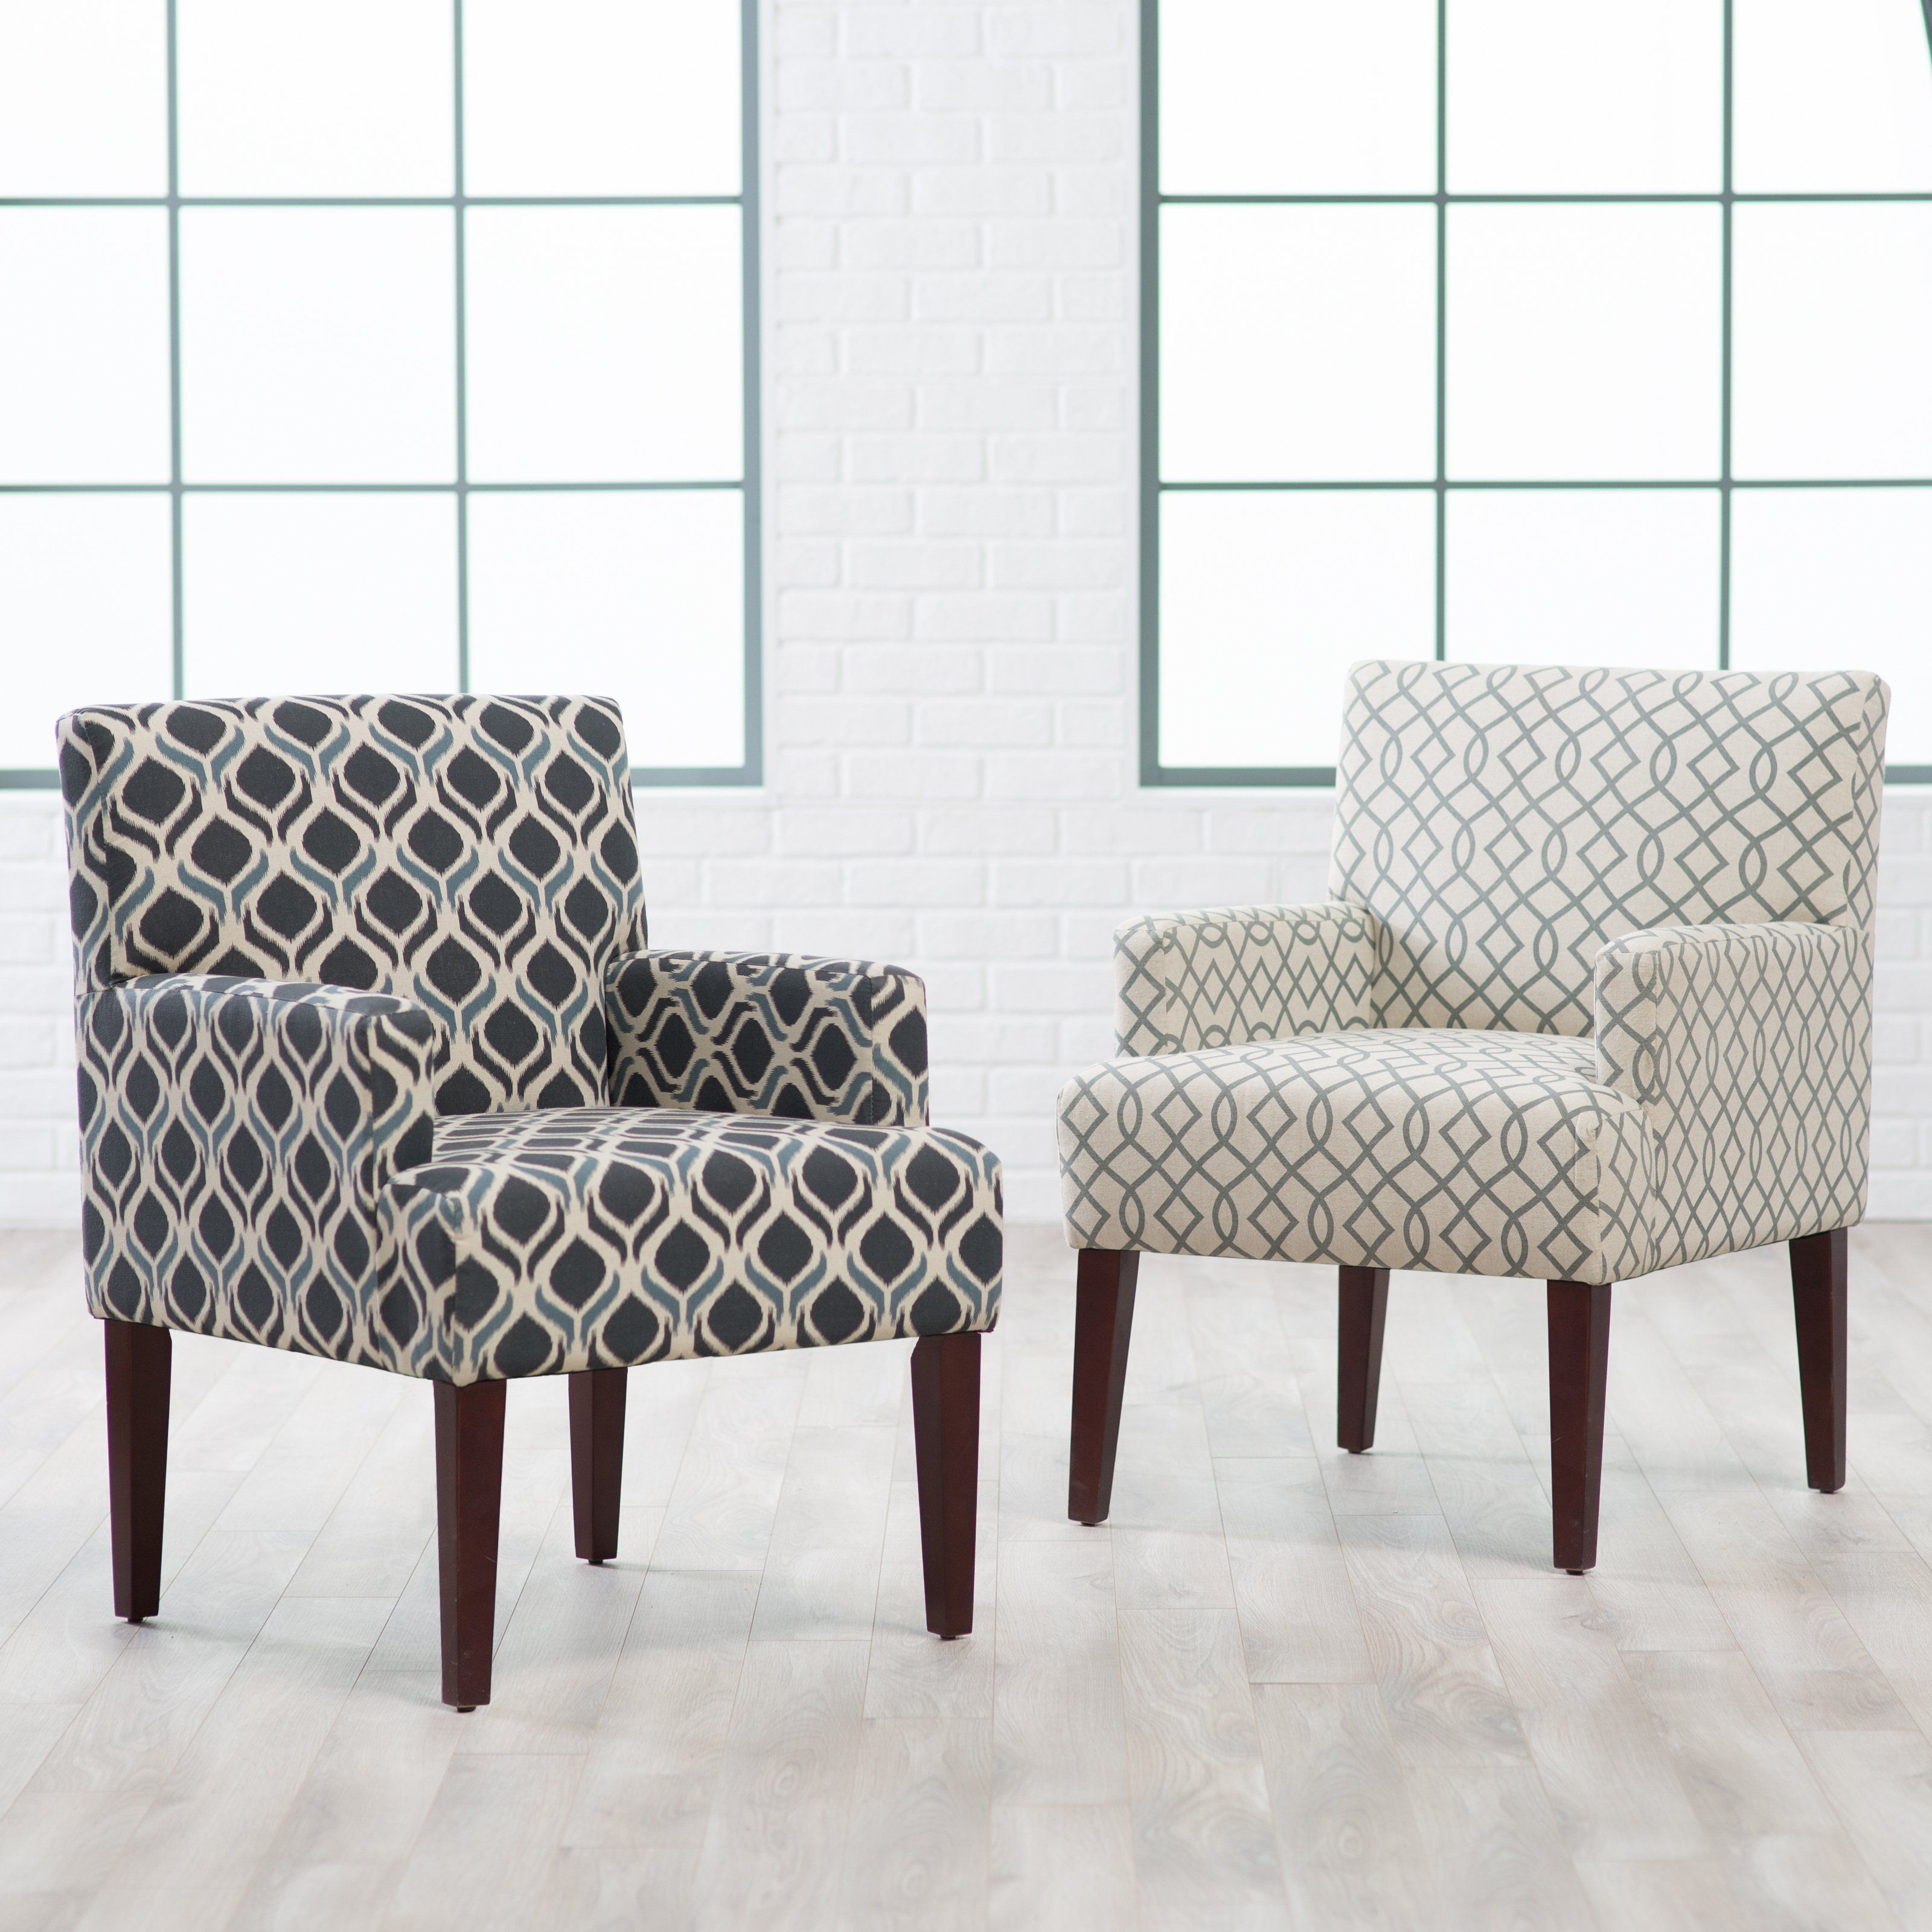 Belham living geo accent chair with arms when youre piecing together a living room or bedroom seating ensemble the transitional belham living geo accent